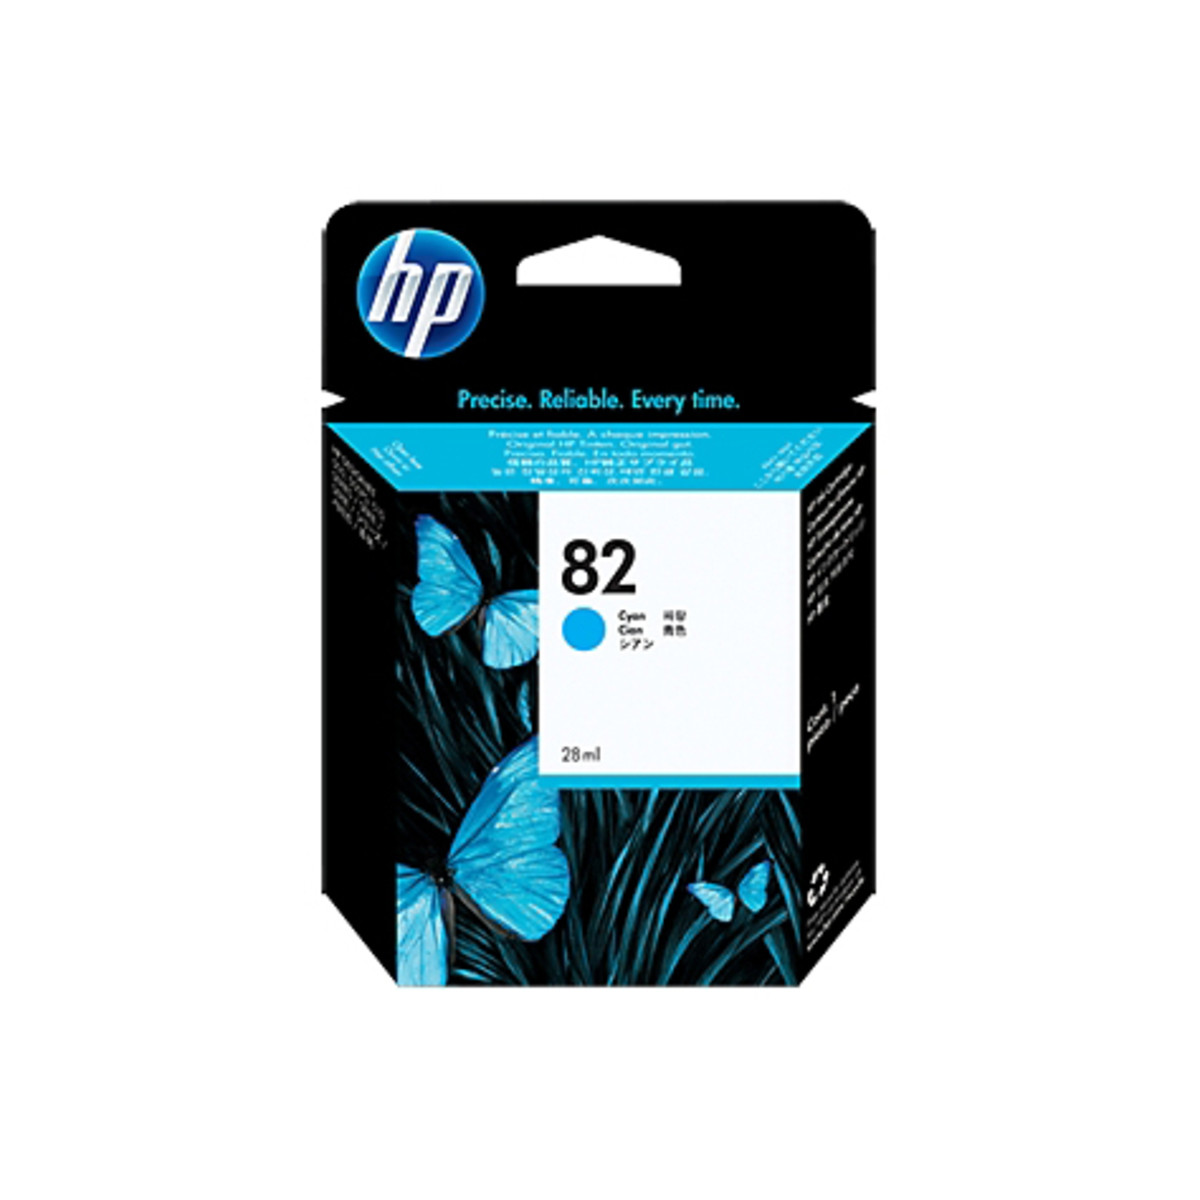 HP 82 (C4911A) Cyan Ink Cartridge